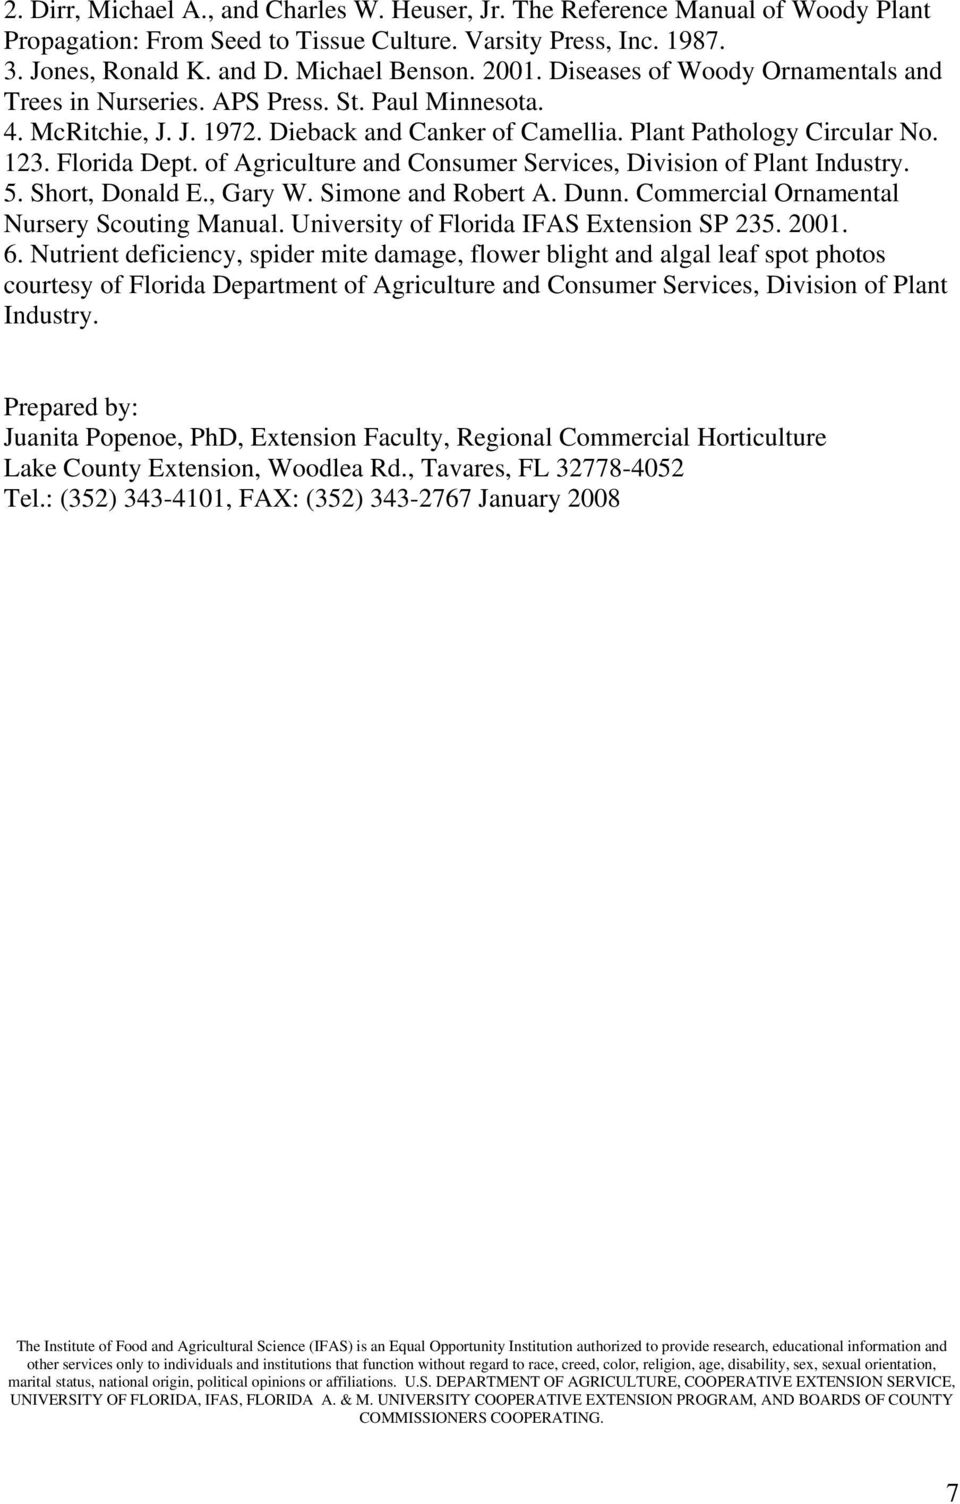 of Agriculture and Consumer Services, Division of Plant Industry. 5. Short, Donald E., Gary W. Simone and Robert A. Dunn. Commercial Ornamental Nursery Scouting Manual.